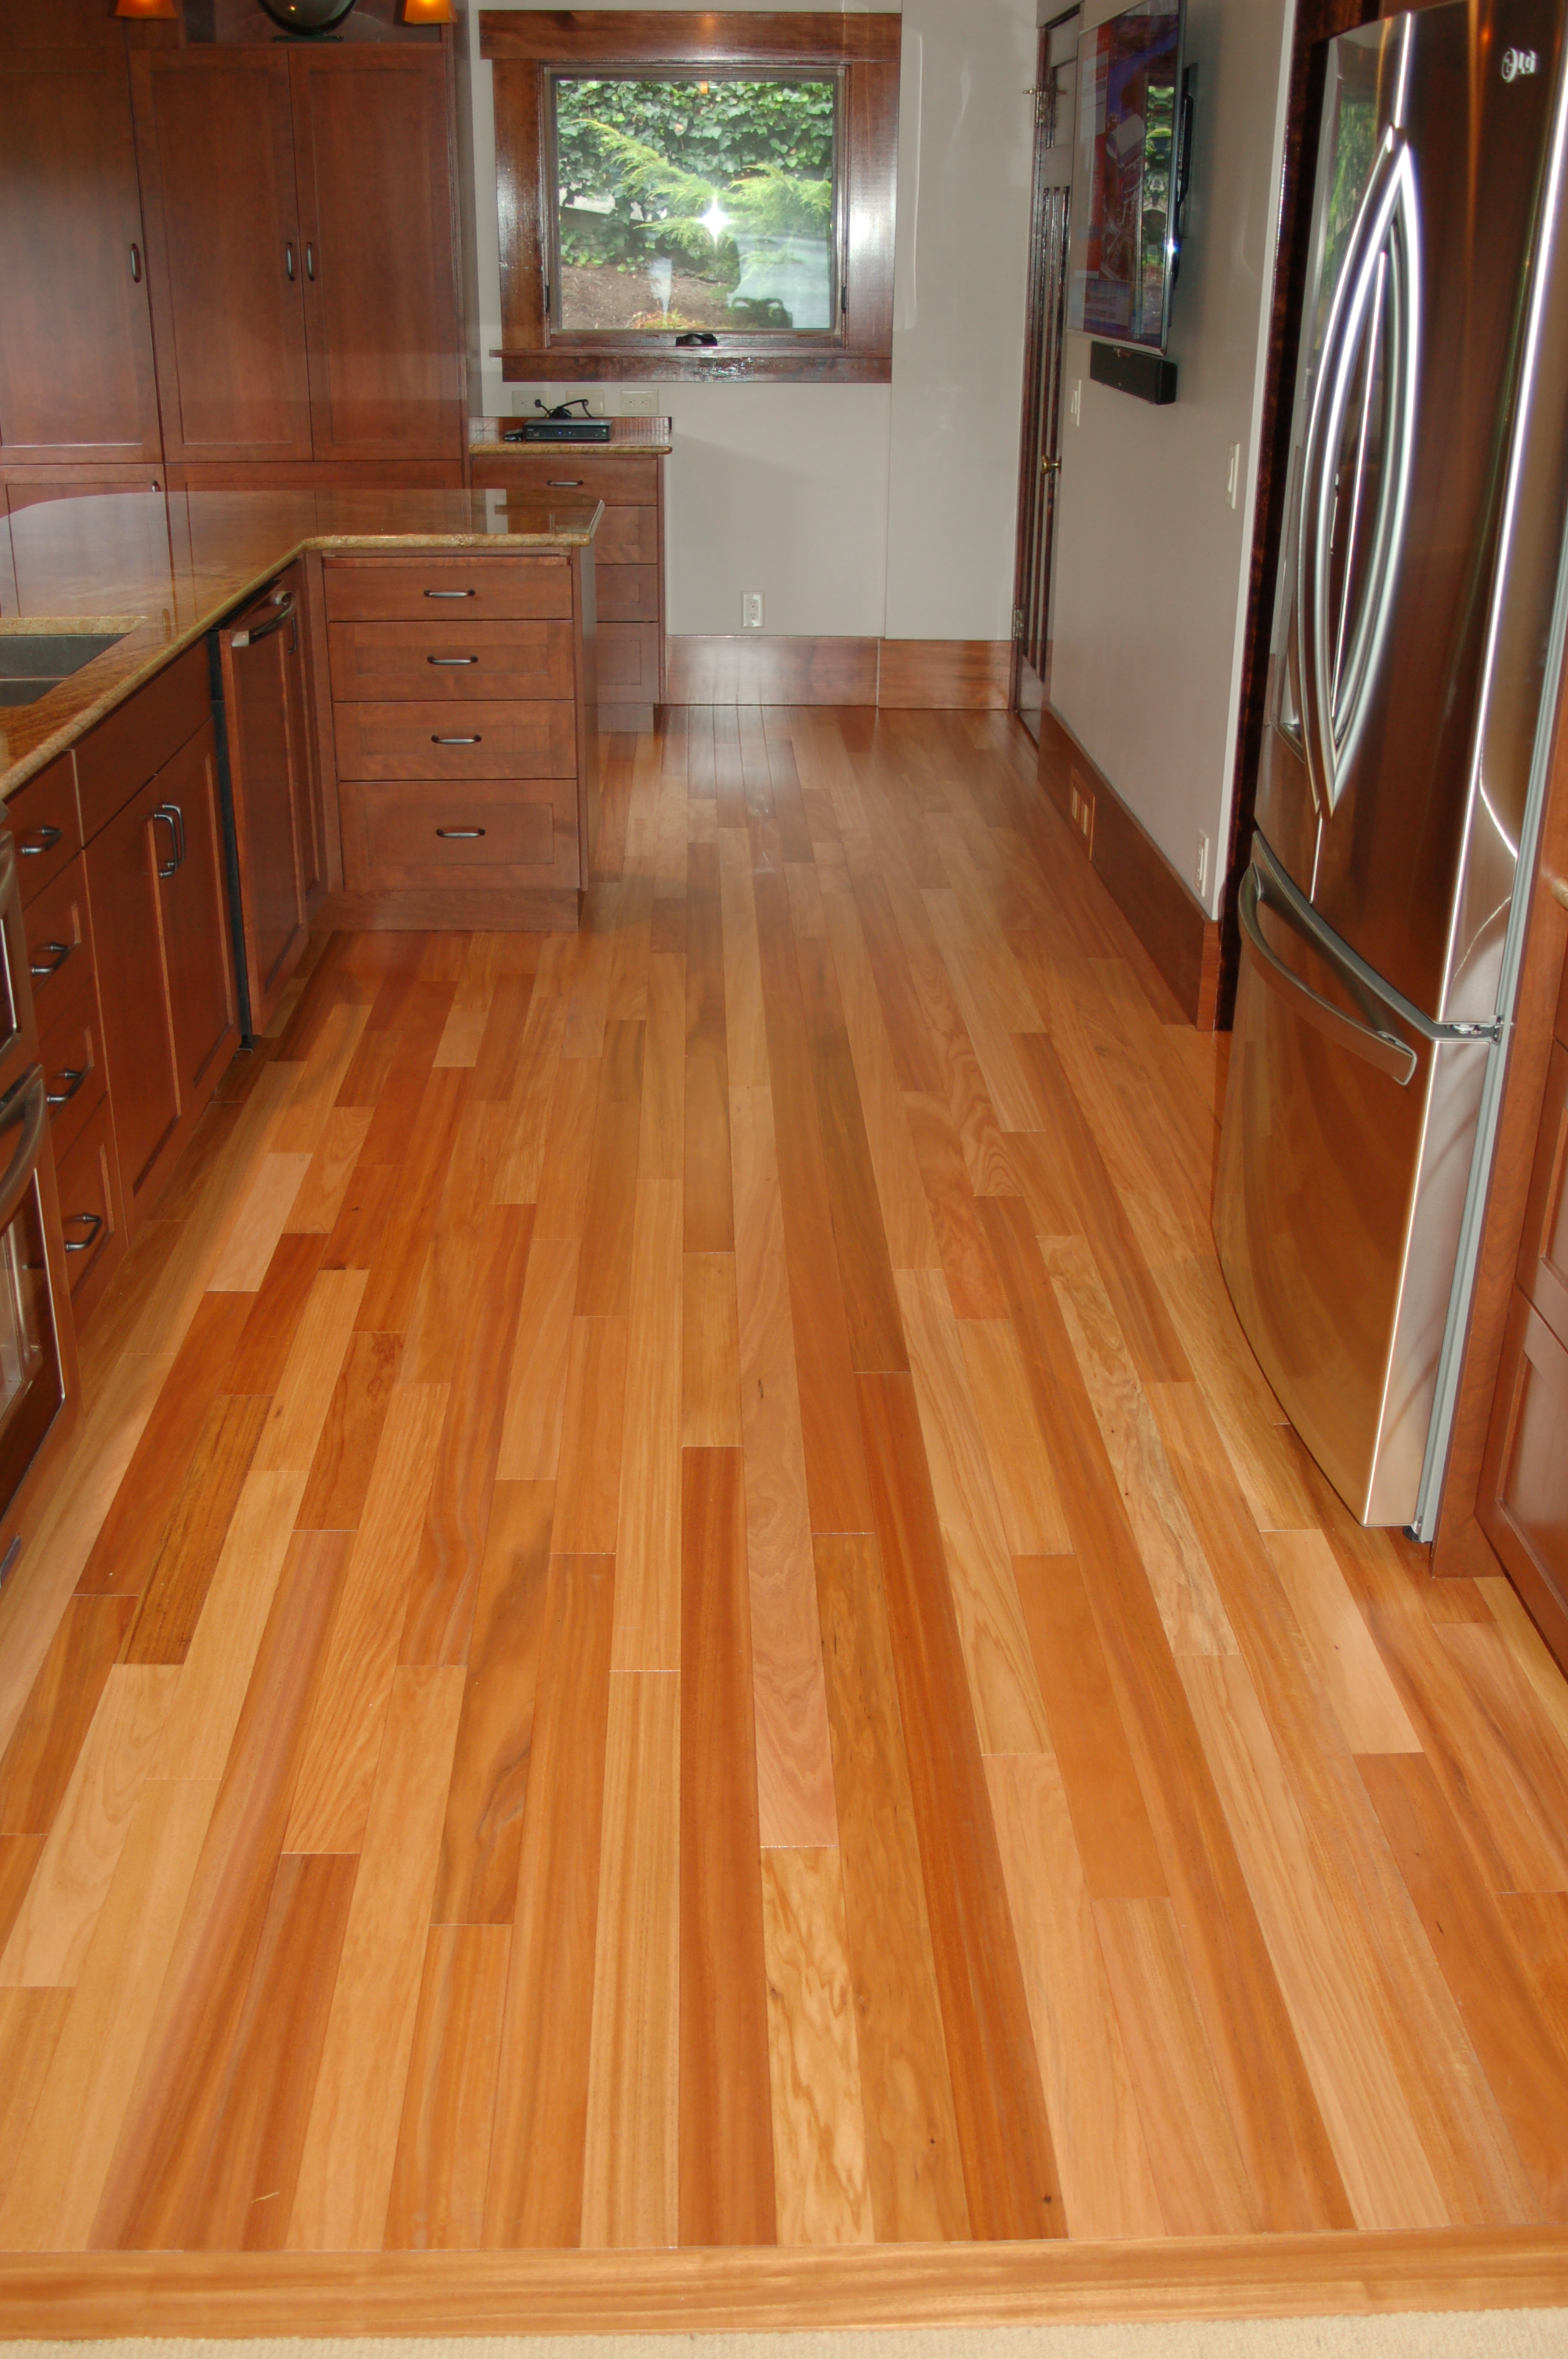 kitchen remodel part ii of iv choosing the best flooring kitchen flooring options Kitchen remodel Part II of IV Choosing the best flooring